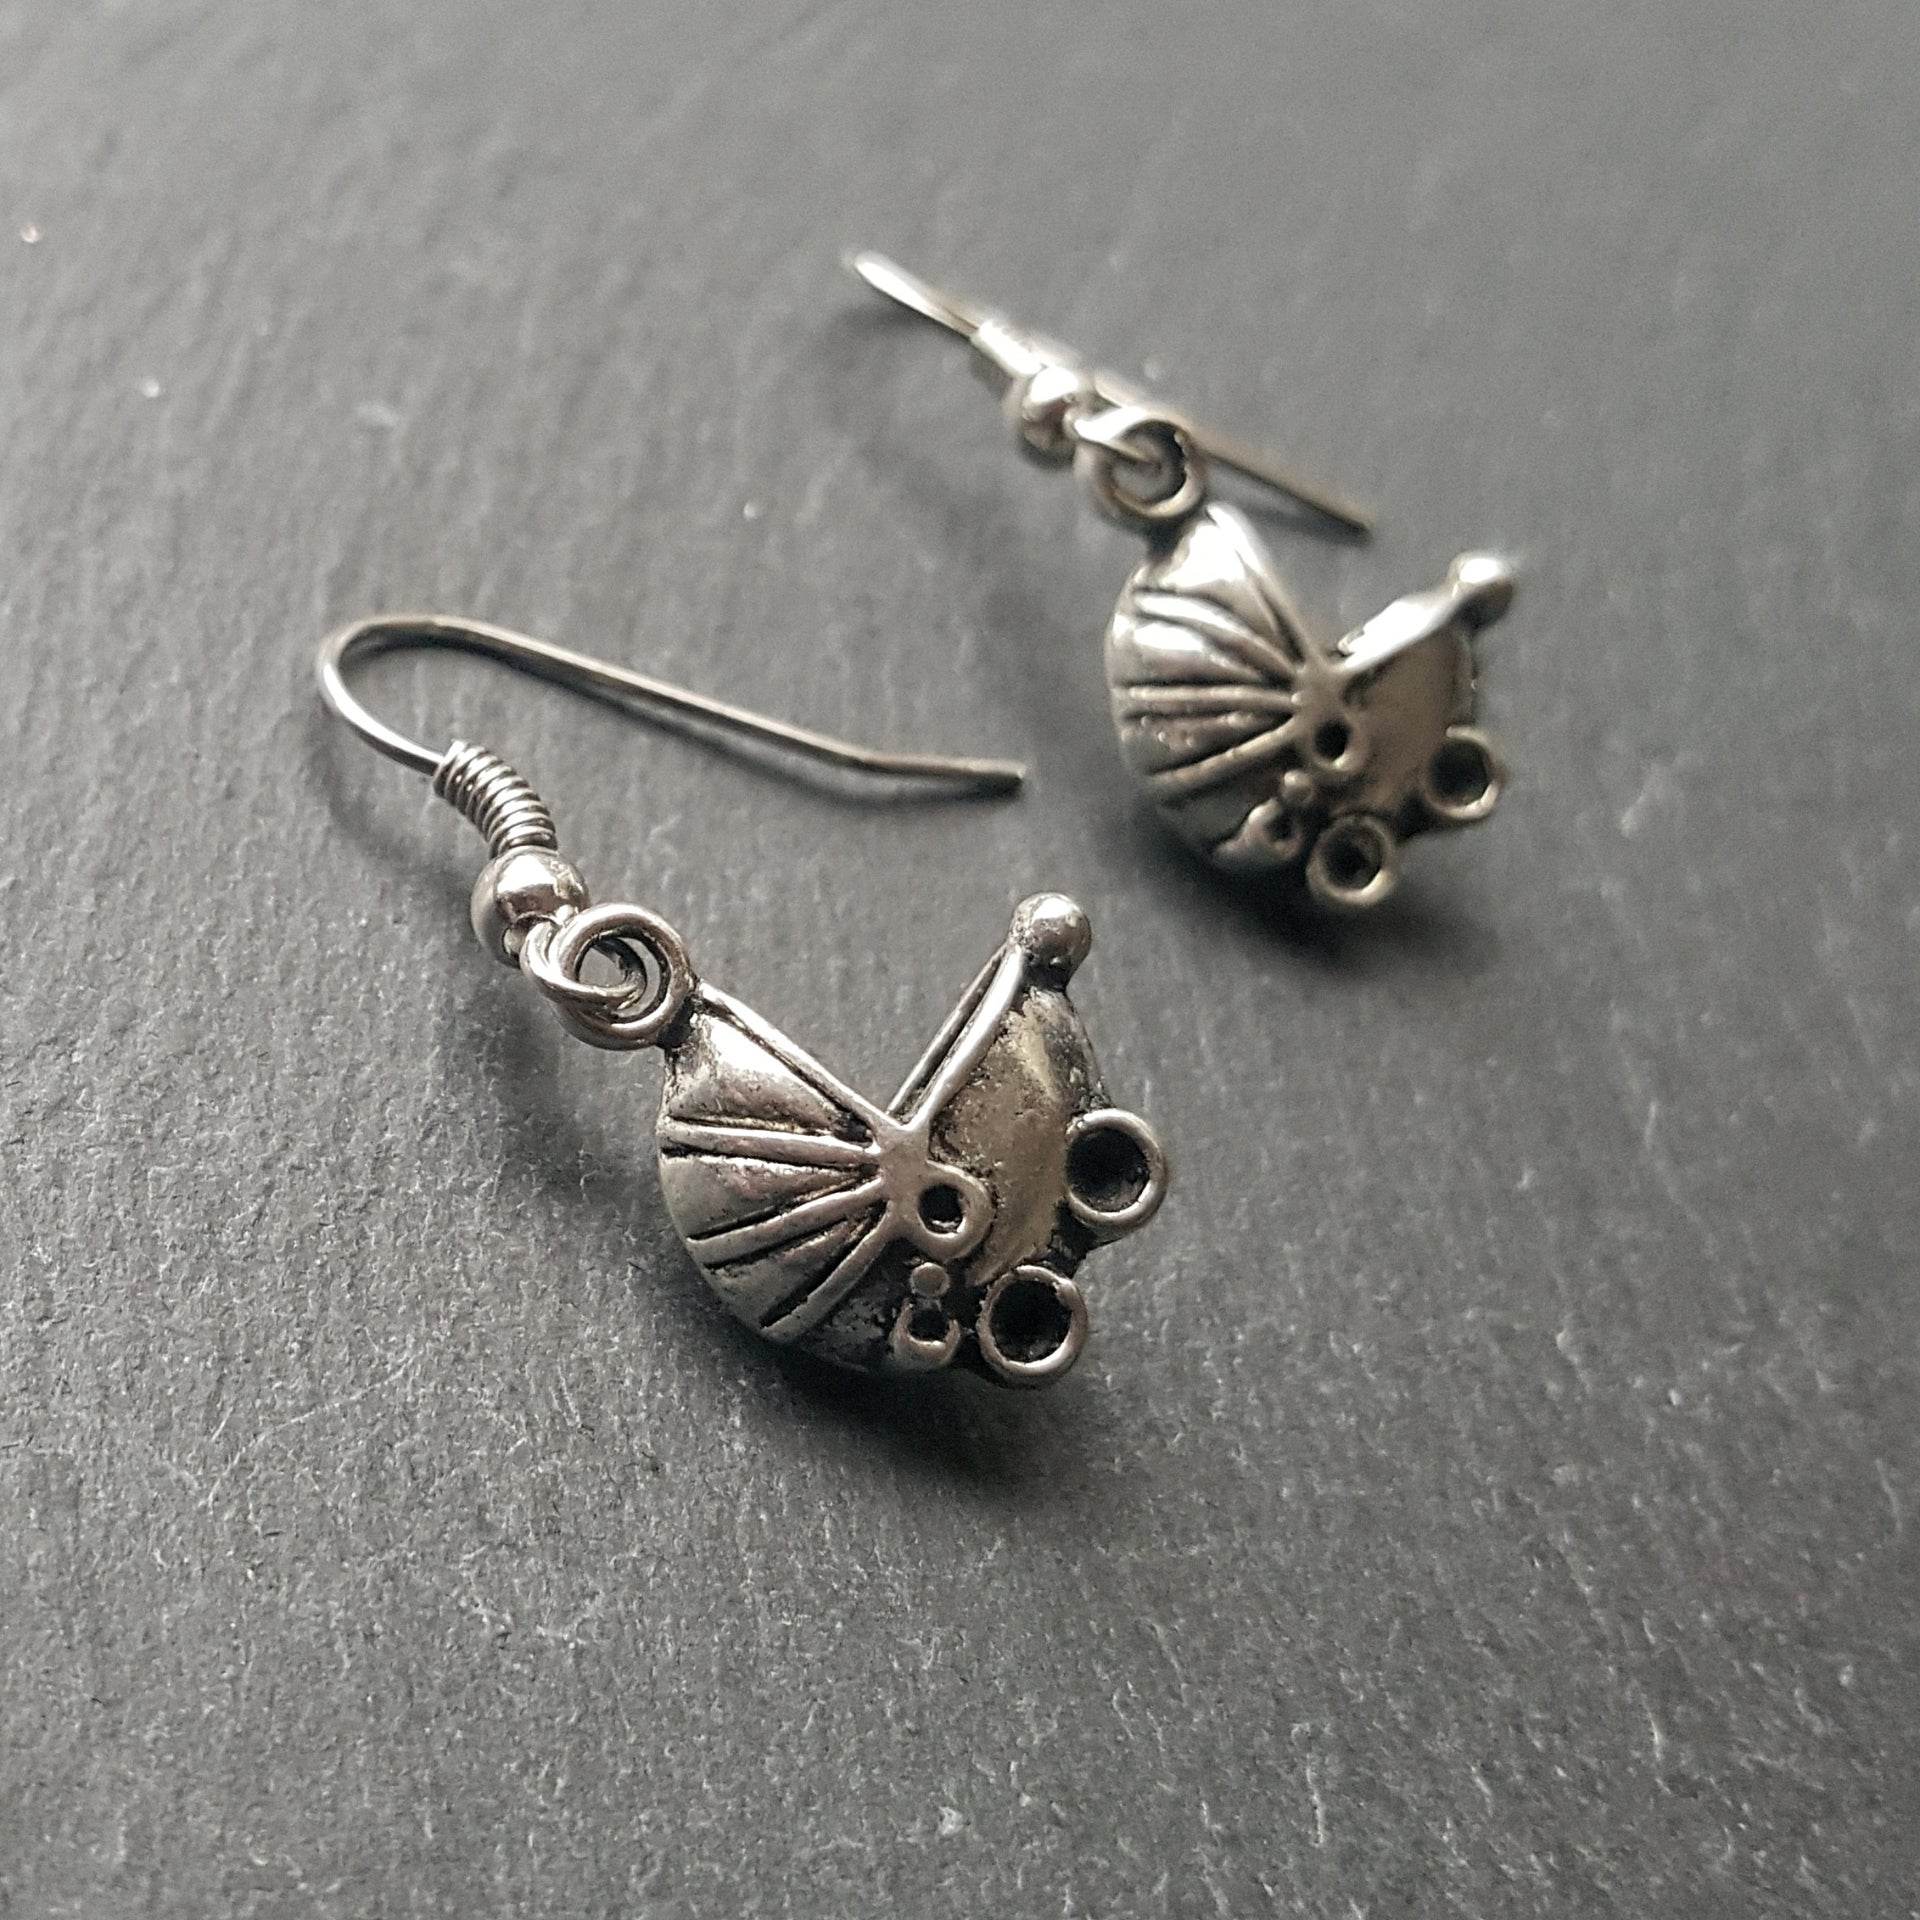 Silver Baby Buggy Earrings Gift for Expectant Moms - DRAVYNMOOR